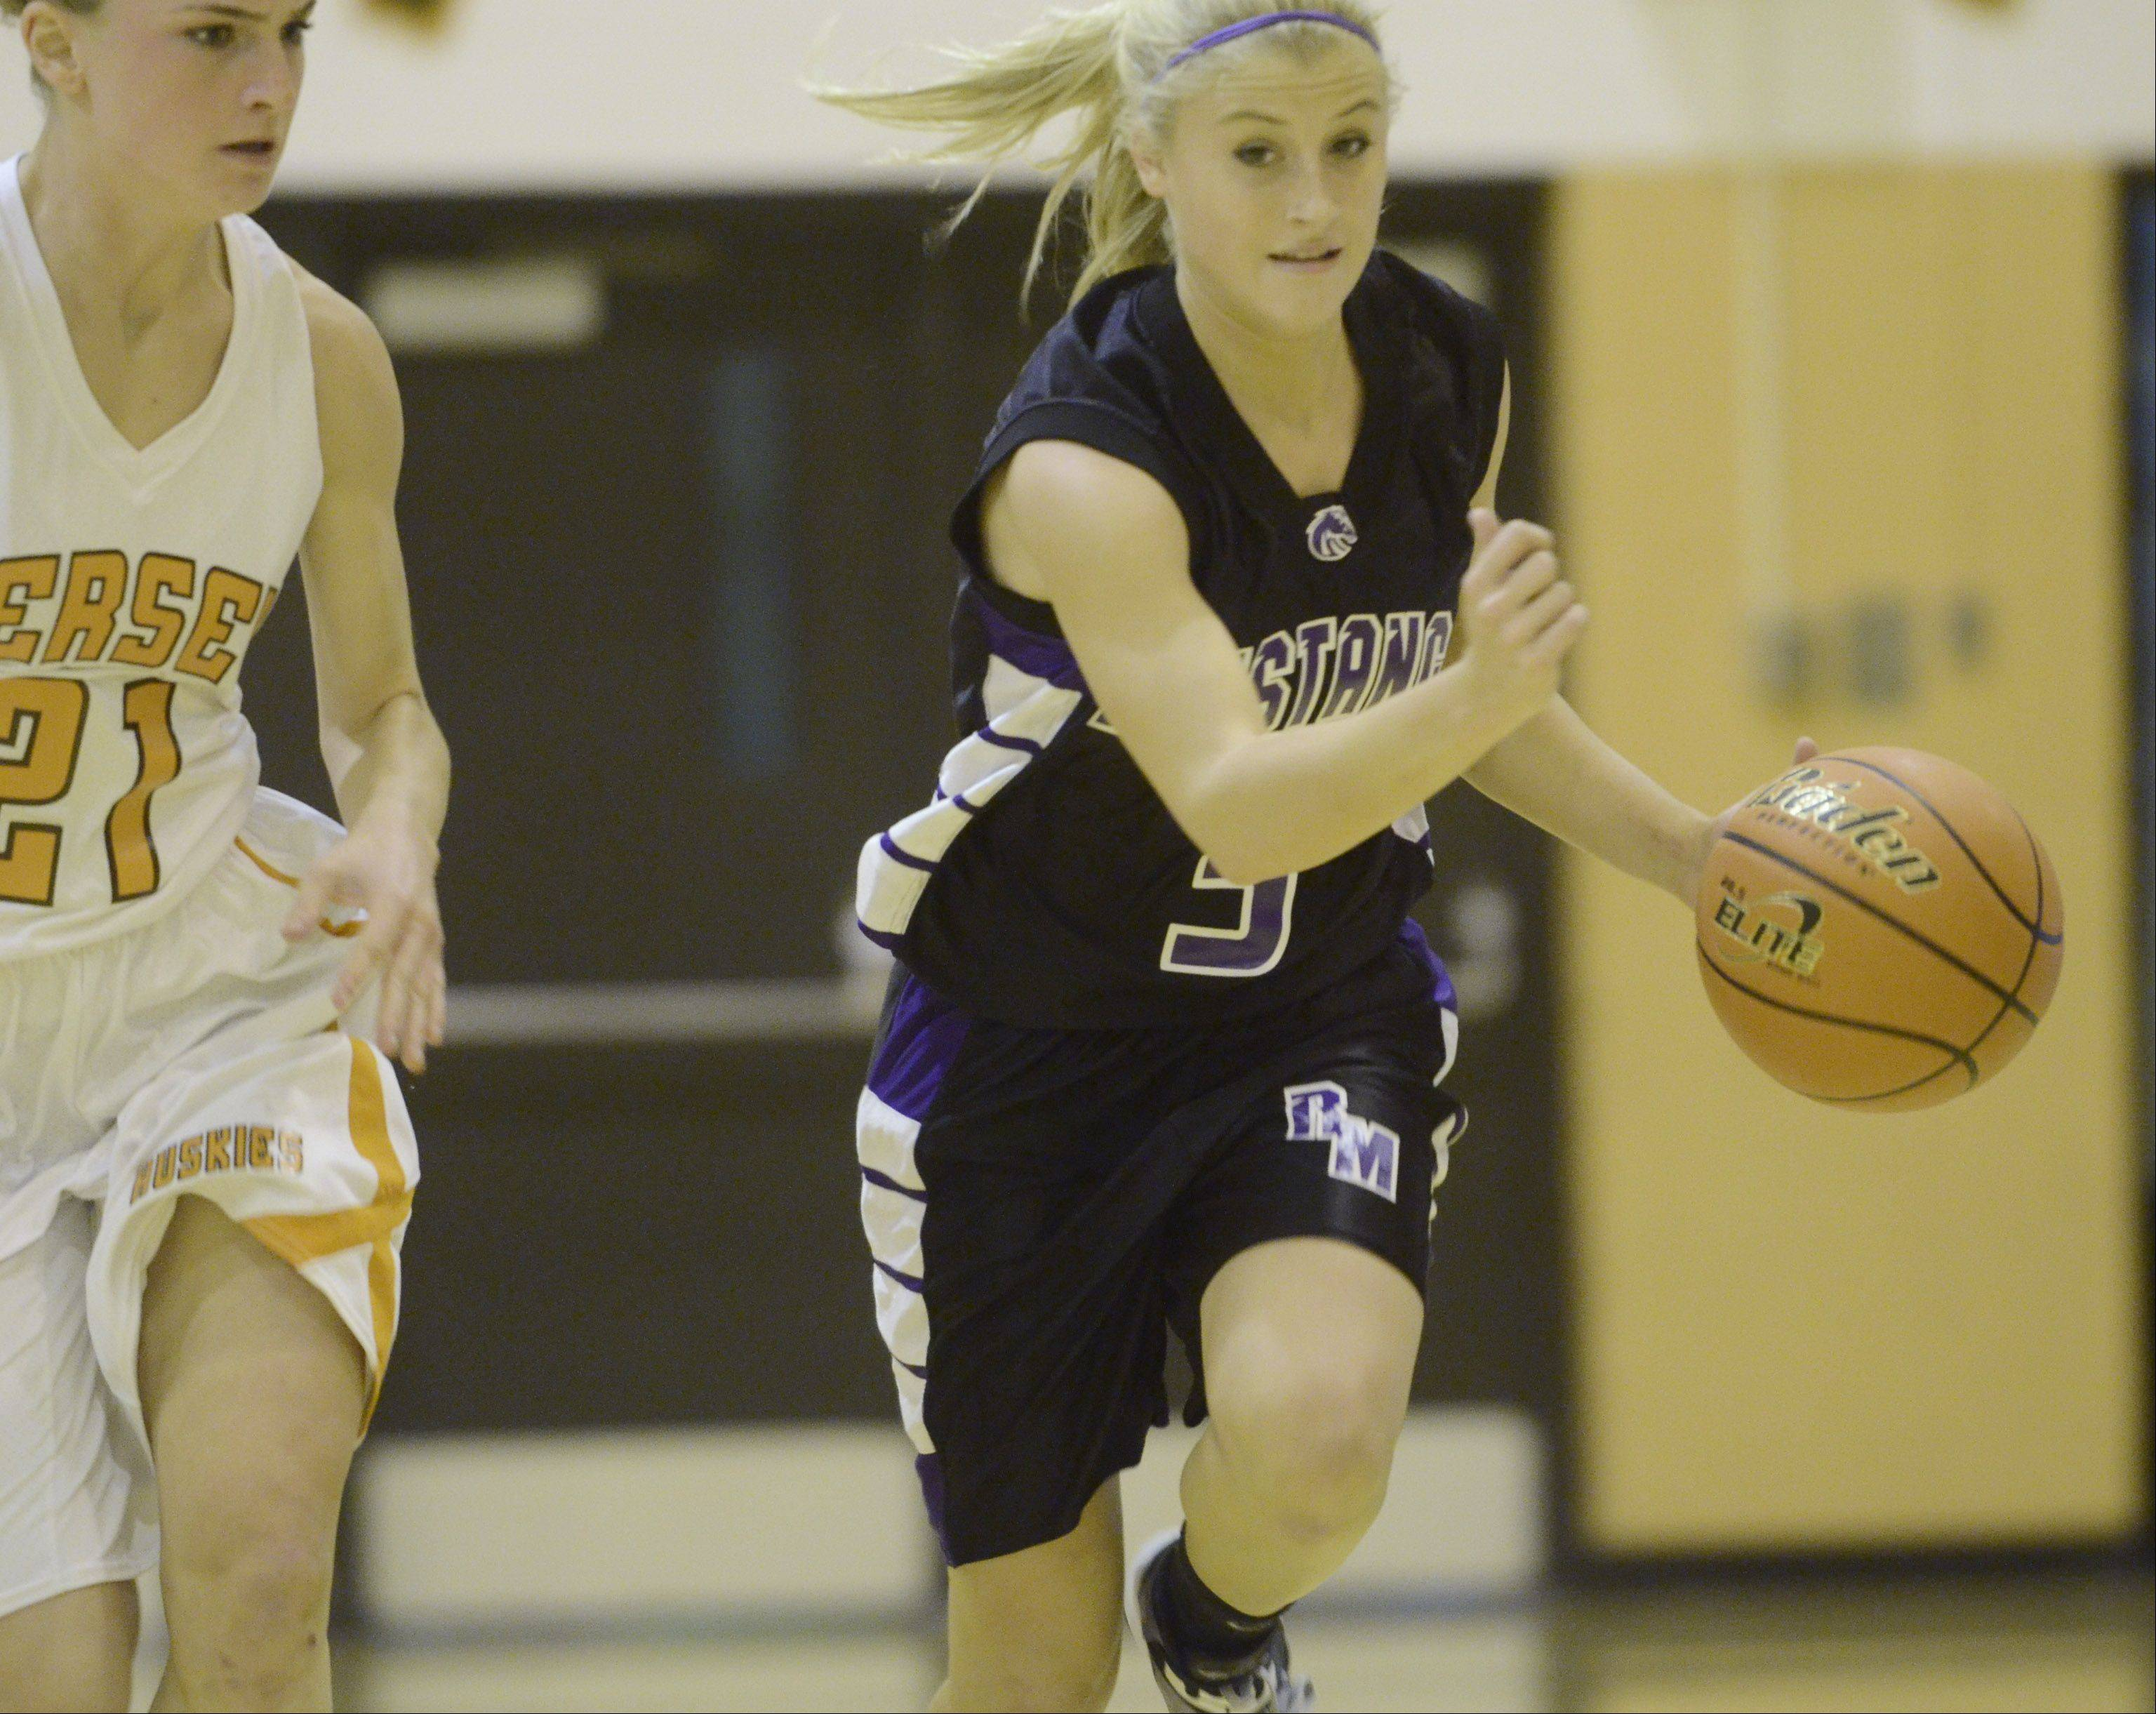 Images from the Rolling Meadows vs Hersey girls basketball game on Tuesday, December 4th, in Arlington Heights.